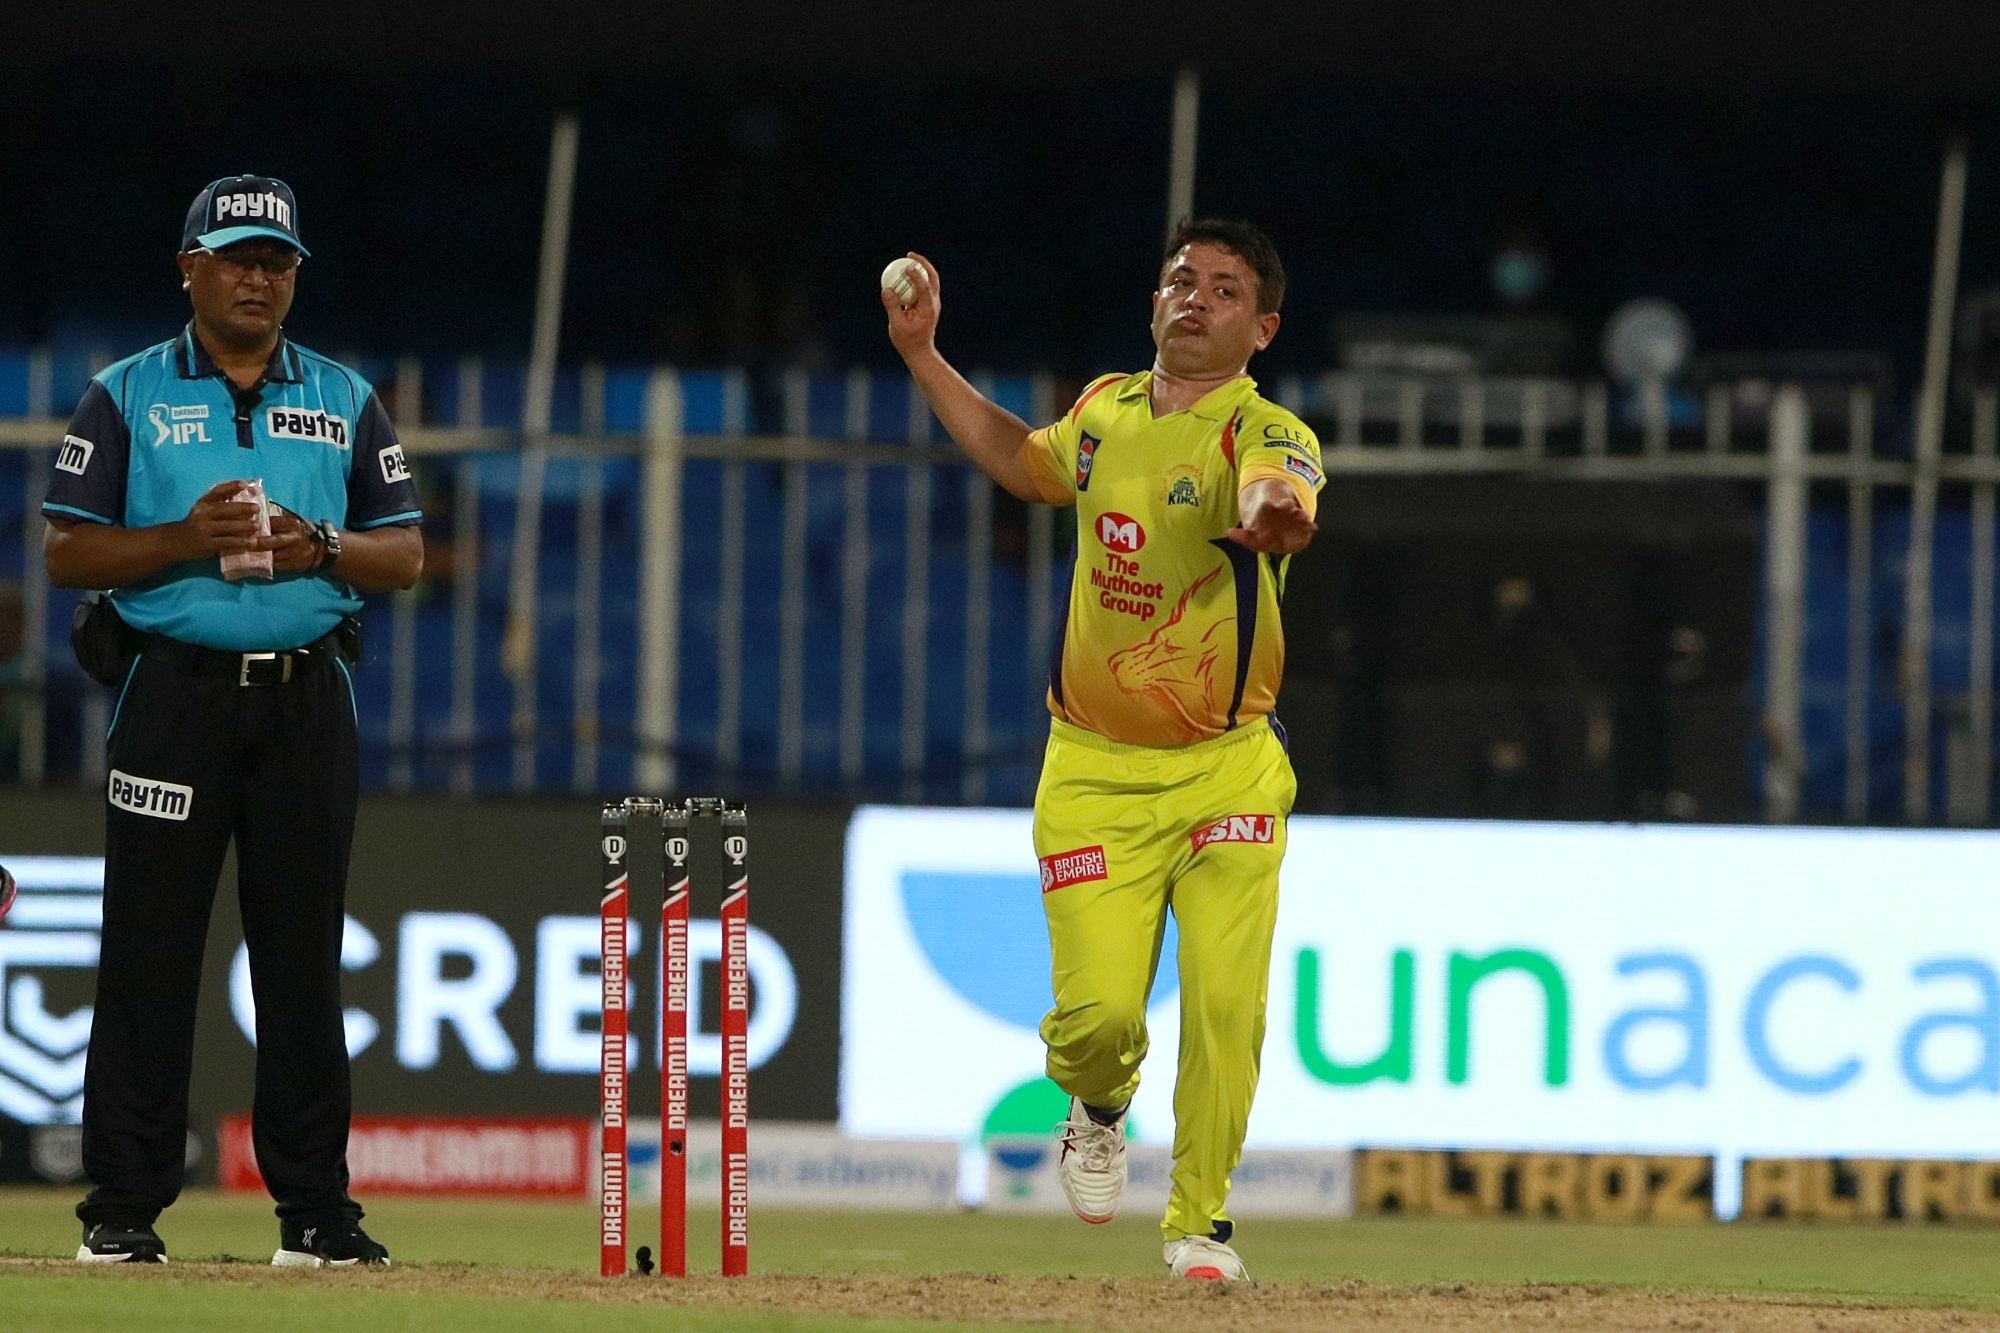 Chawla couldn't justify his 6.75 cr INR tag, picking 6 wickets in 7 games | BCCI/IPL